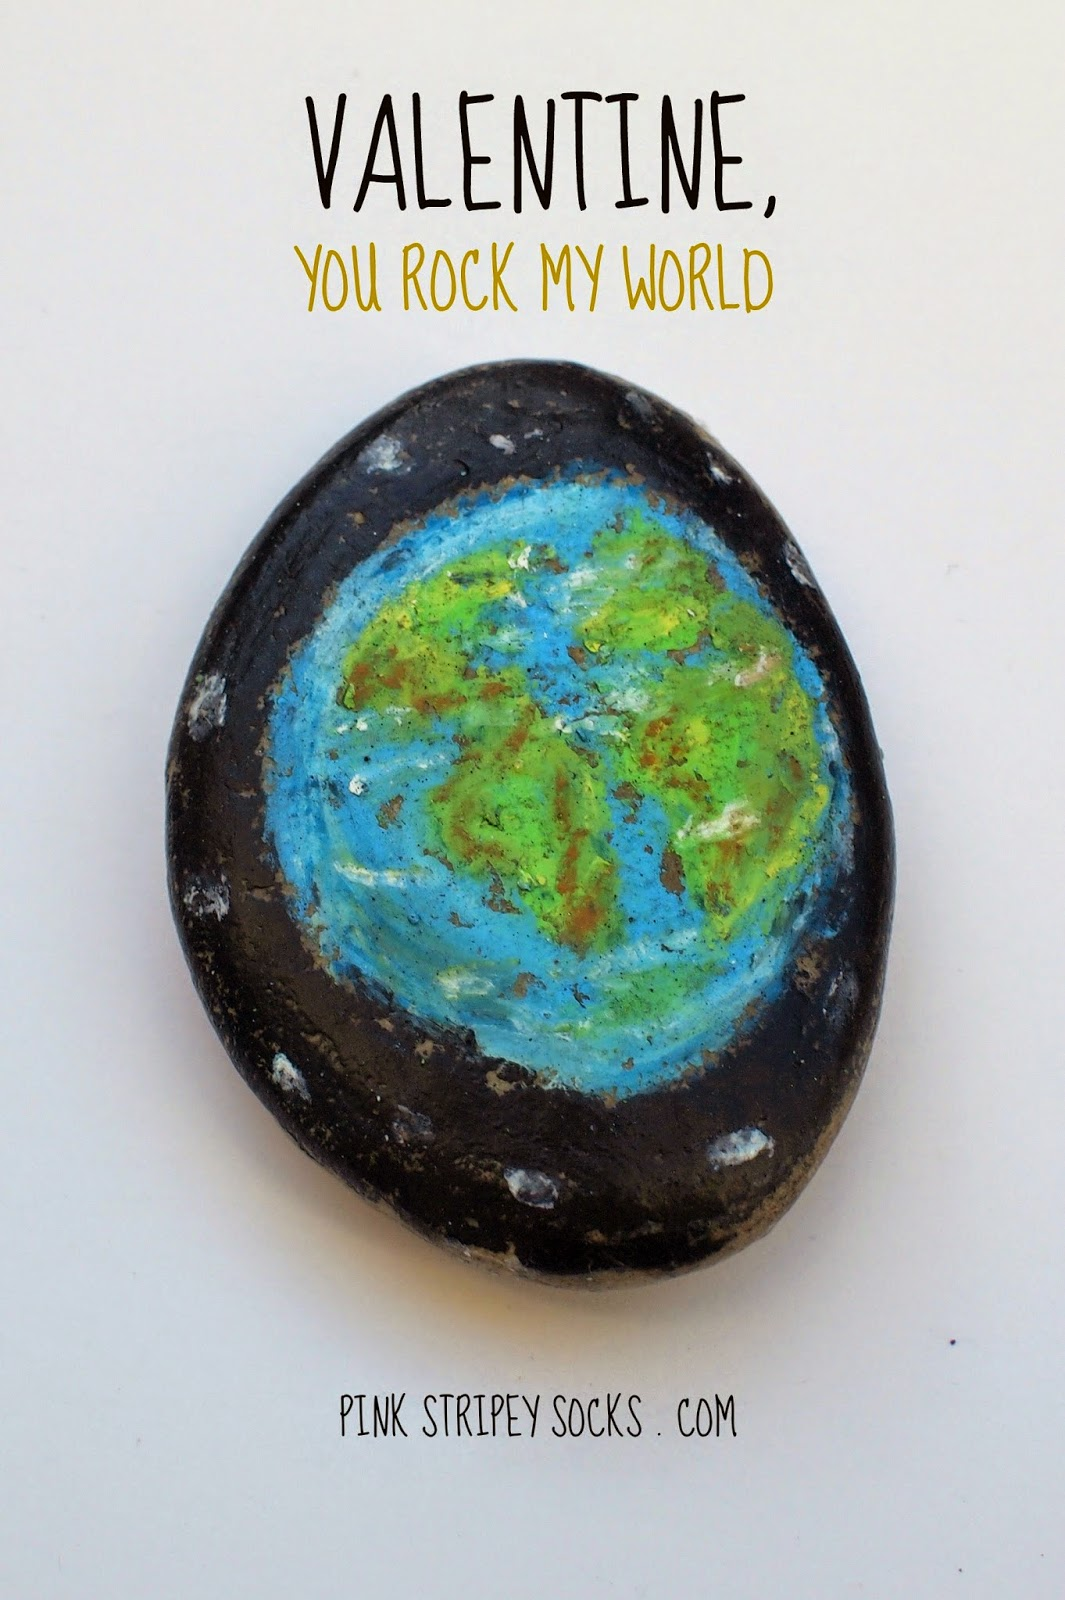 Funny and Pun-y ways to say Happy Valentine's Day- You rock my world rocks